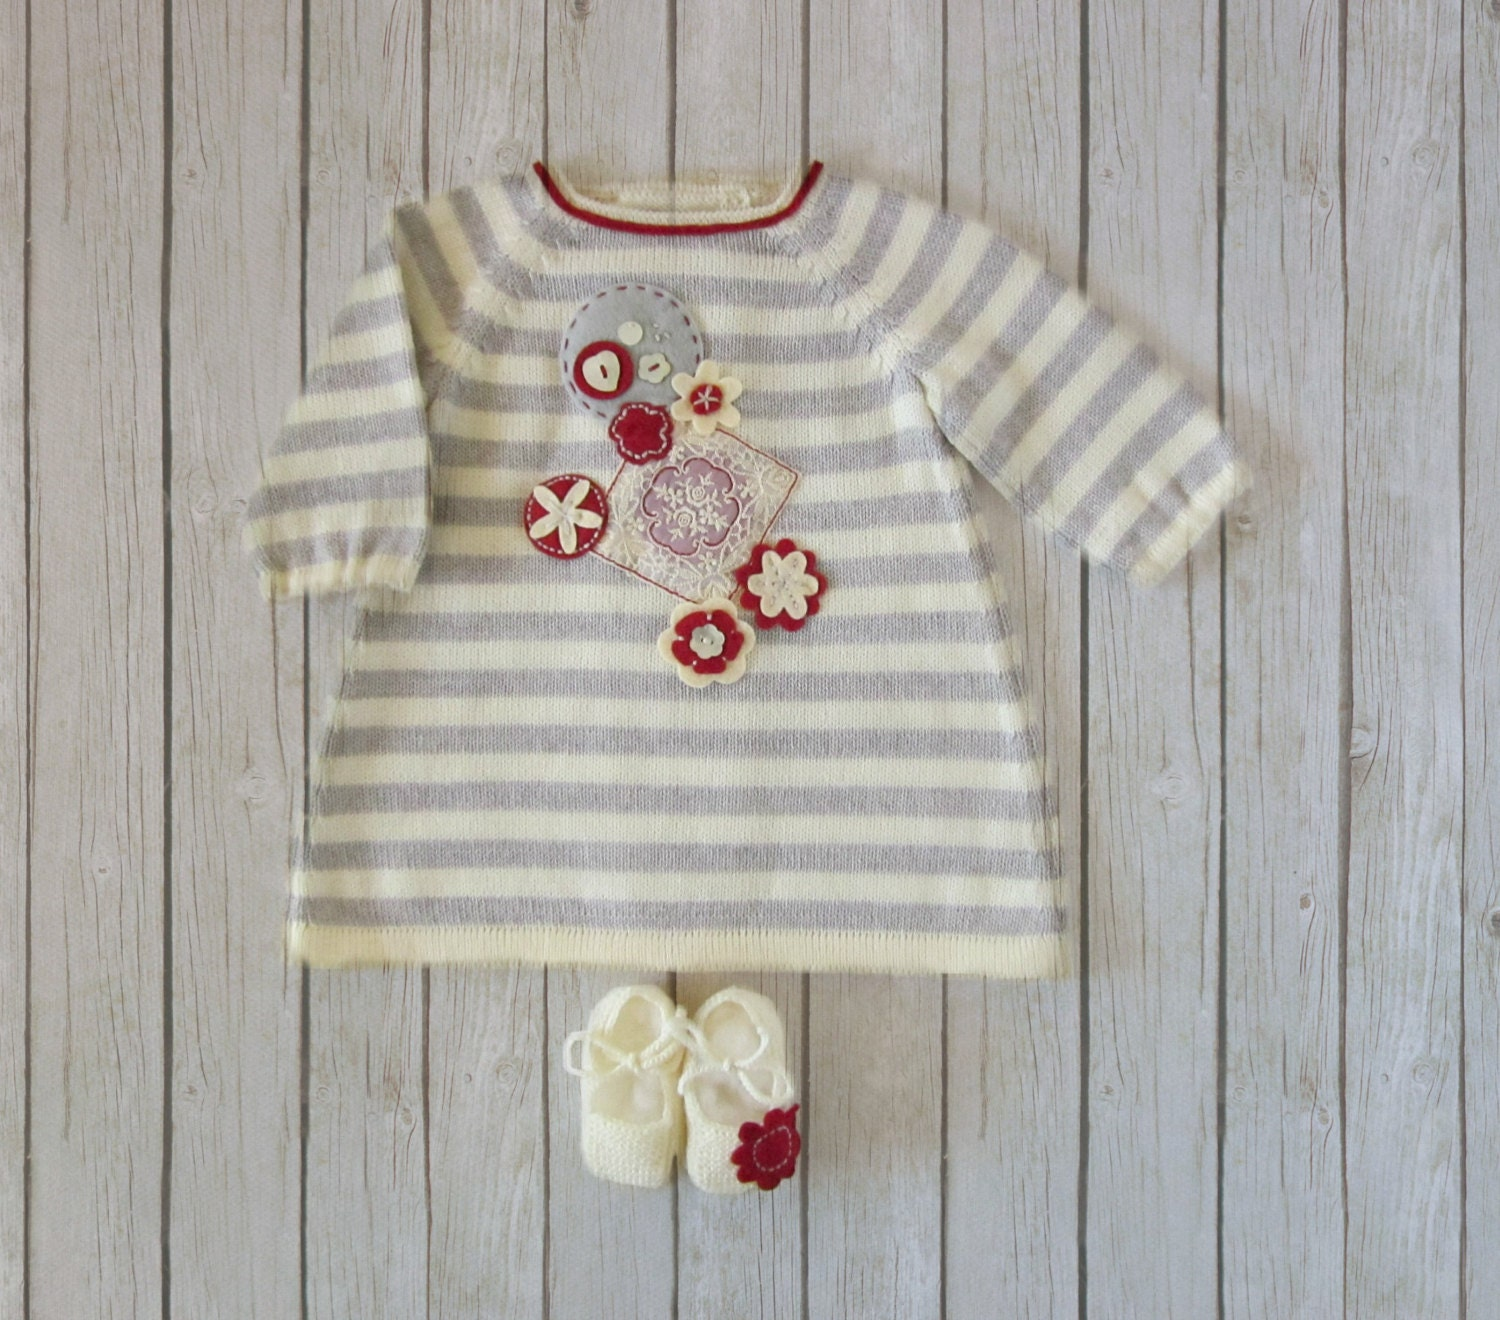 knitted striped baby dress, shoes, in gray and pearl, with felt